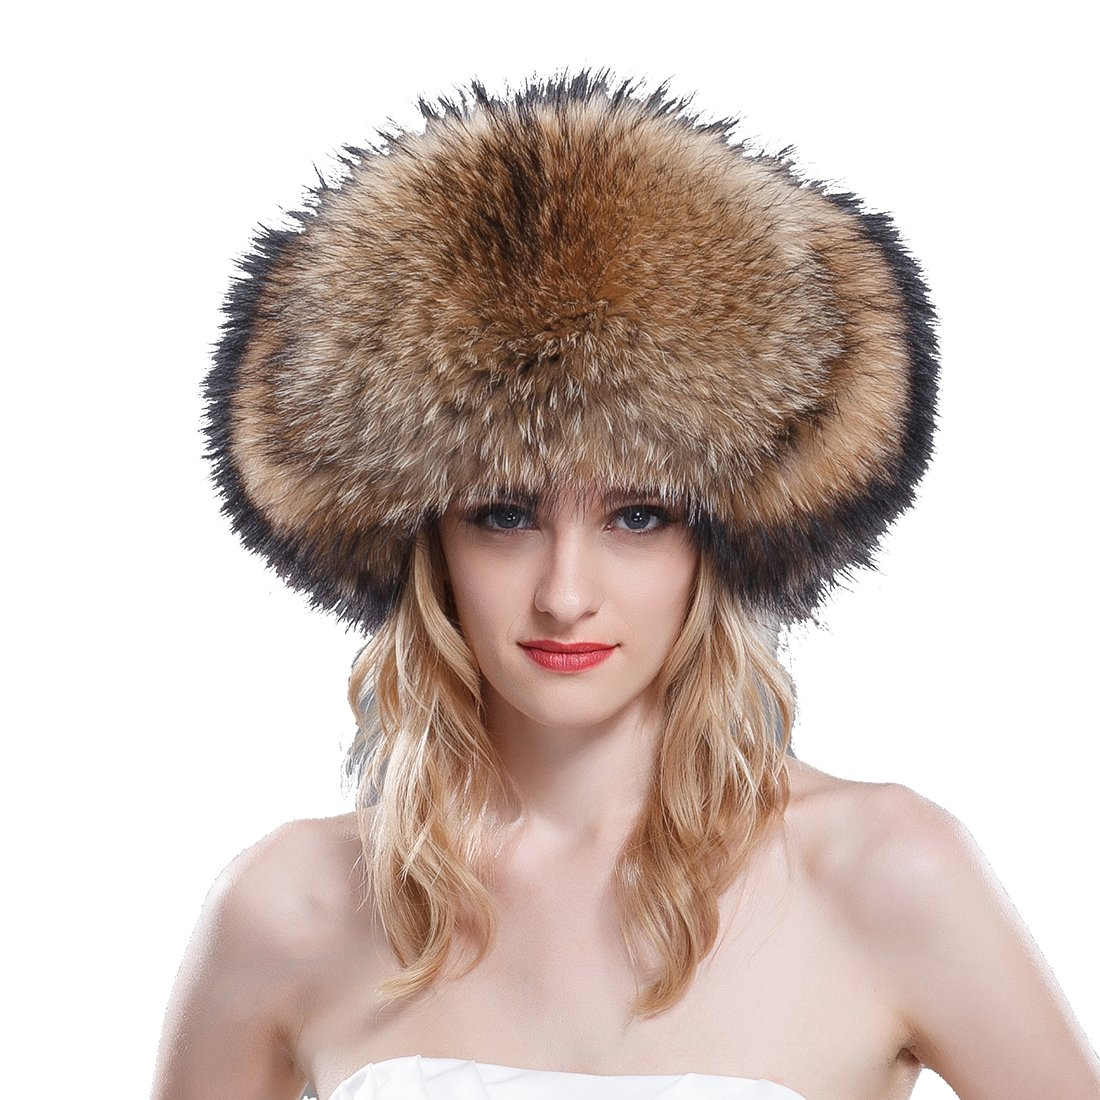 URSFUR Women's Raccoon Fur & Leather Russian Trapper Hats .Ltd. SD-F1356-1-1